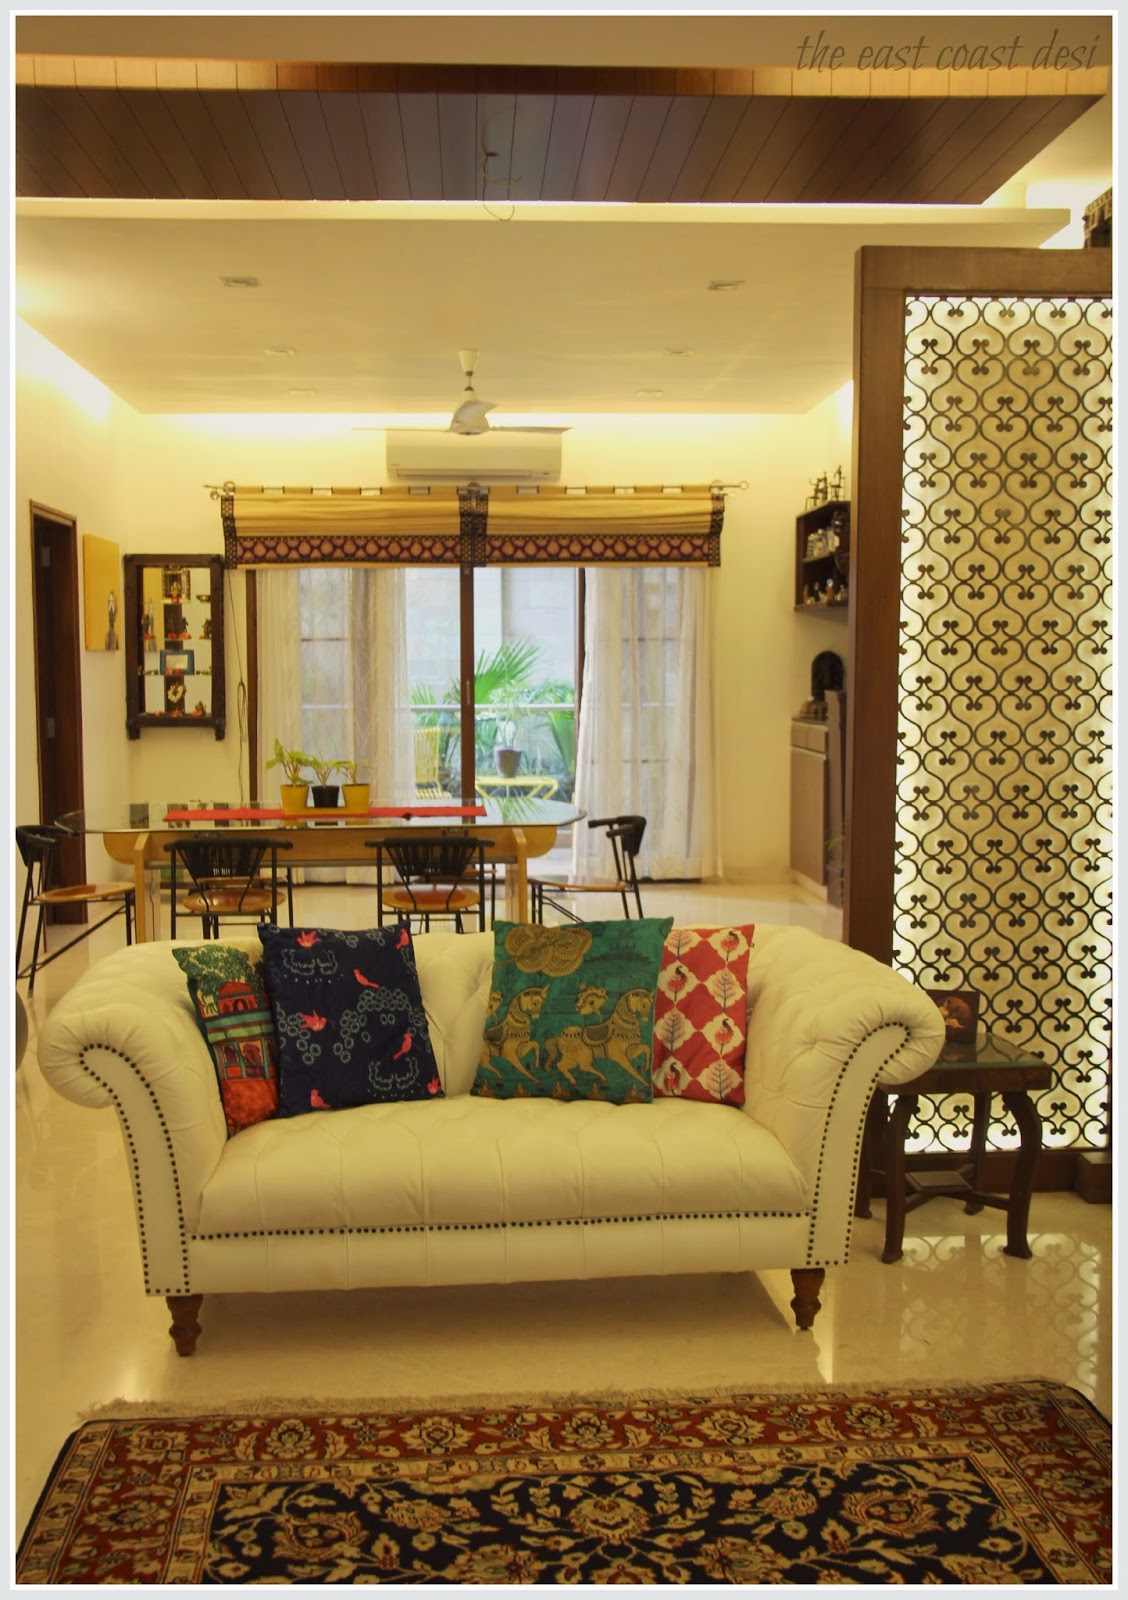 The east coast desi masterful mixing home tour for Interior design for living room chennai